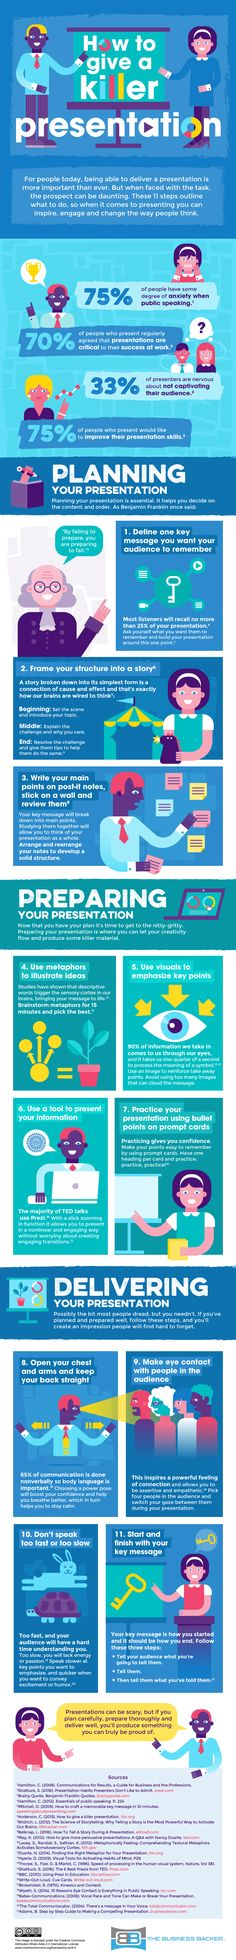 Presentations are critical in the modern workplace, but most people have anxiety about public speaking. These tips on how to hone your presentation skills and win over audiences can help.